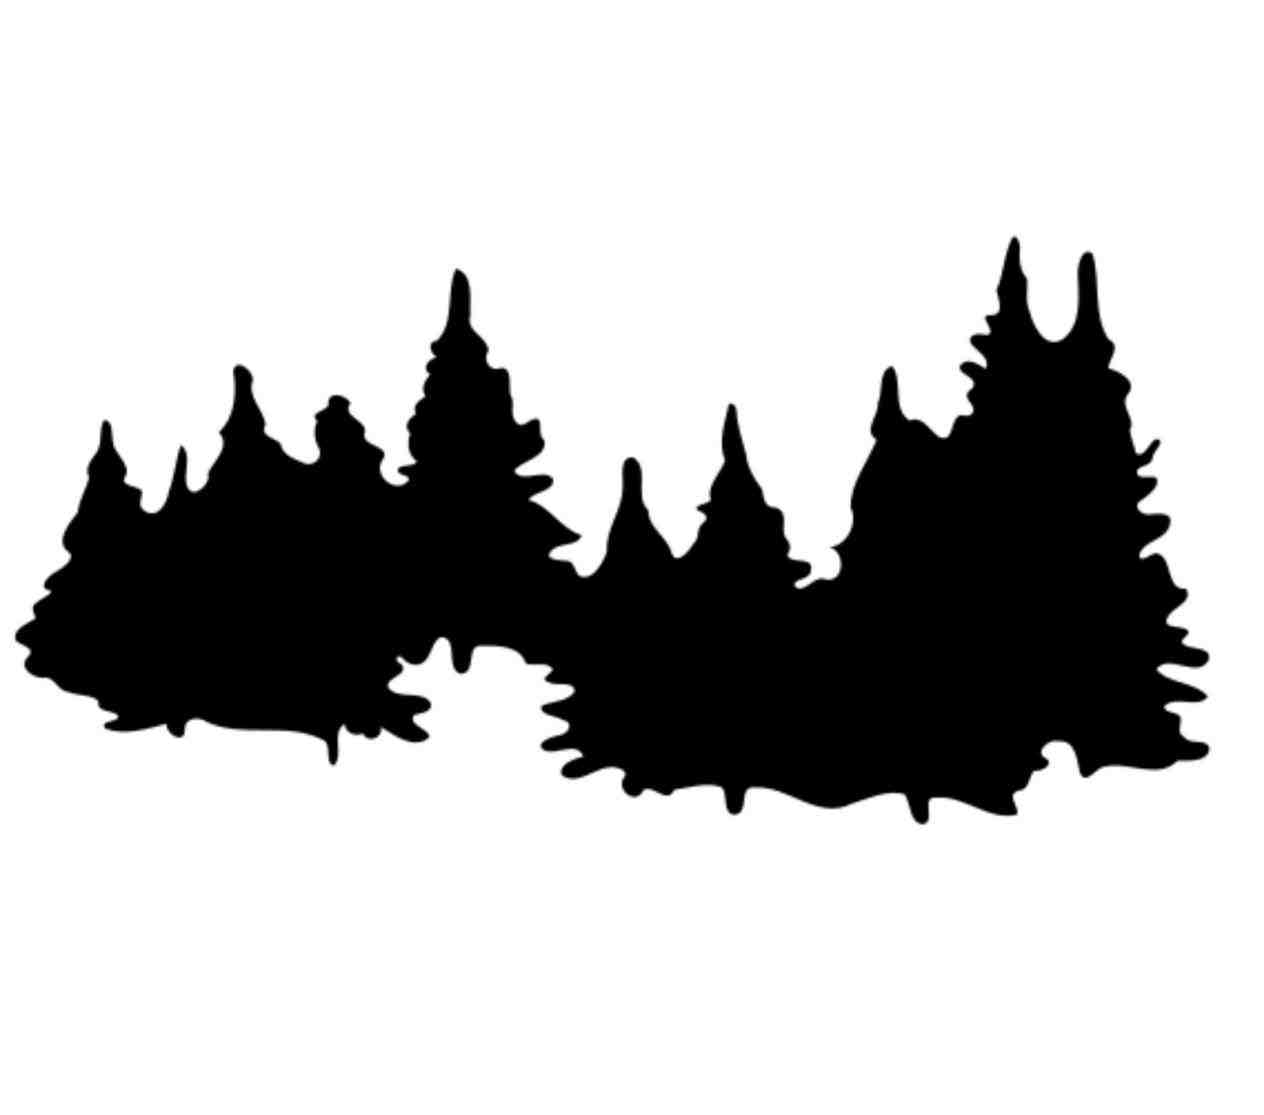 Silhouette Town at GetDrawings.com | Free for personal use ...